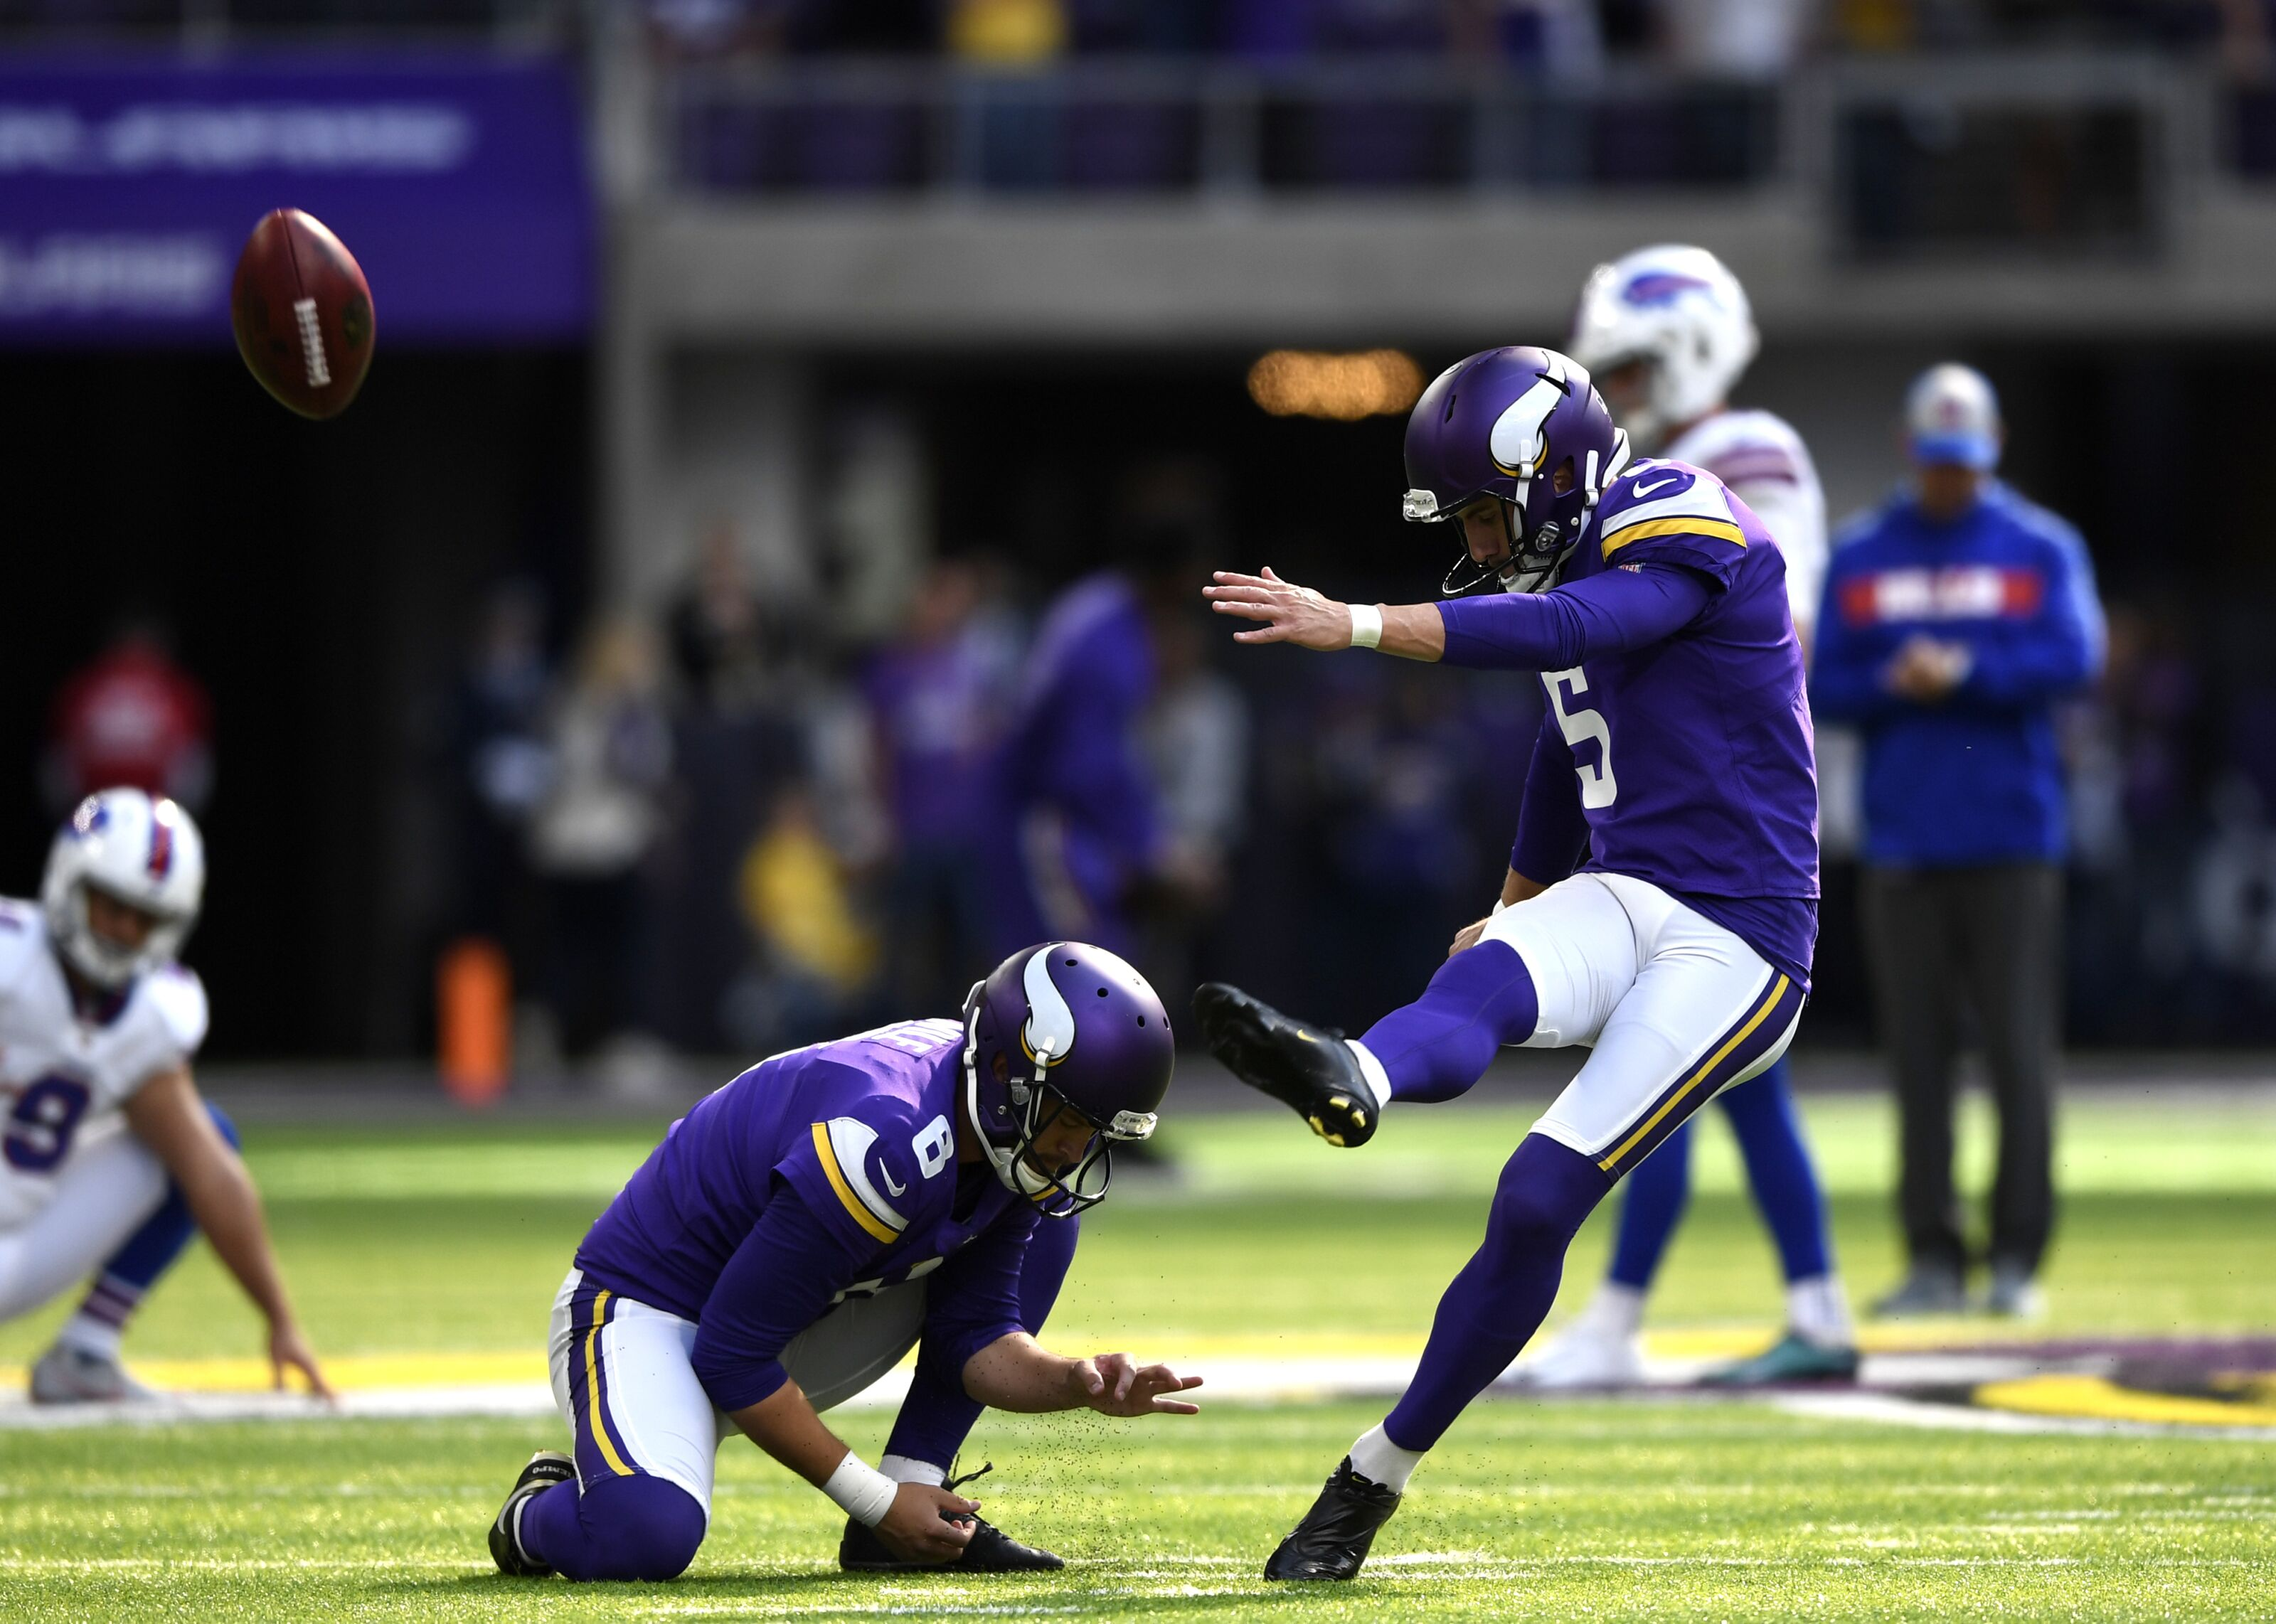 Will the Vikings' special teams be better or worse in 2019?